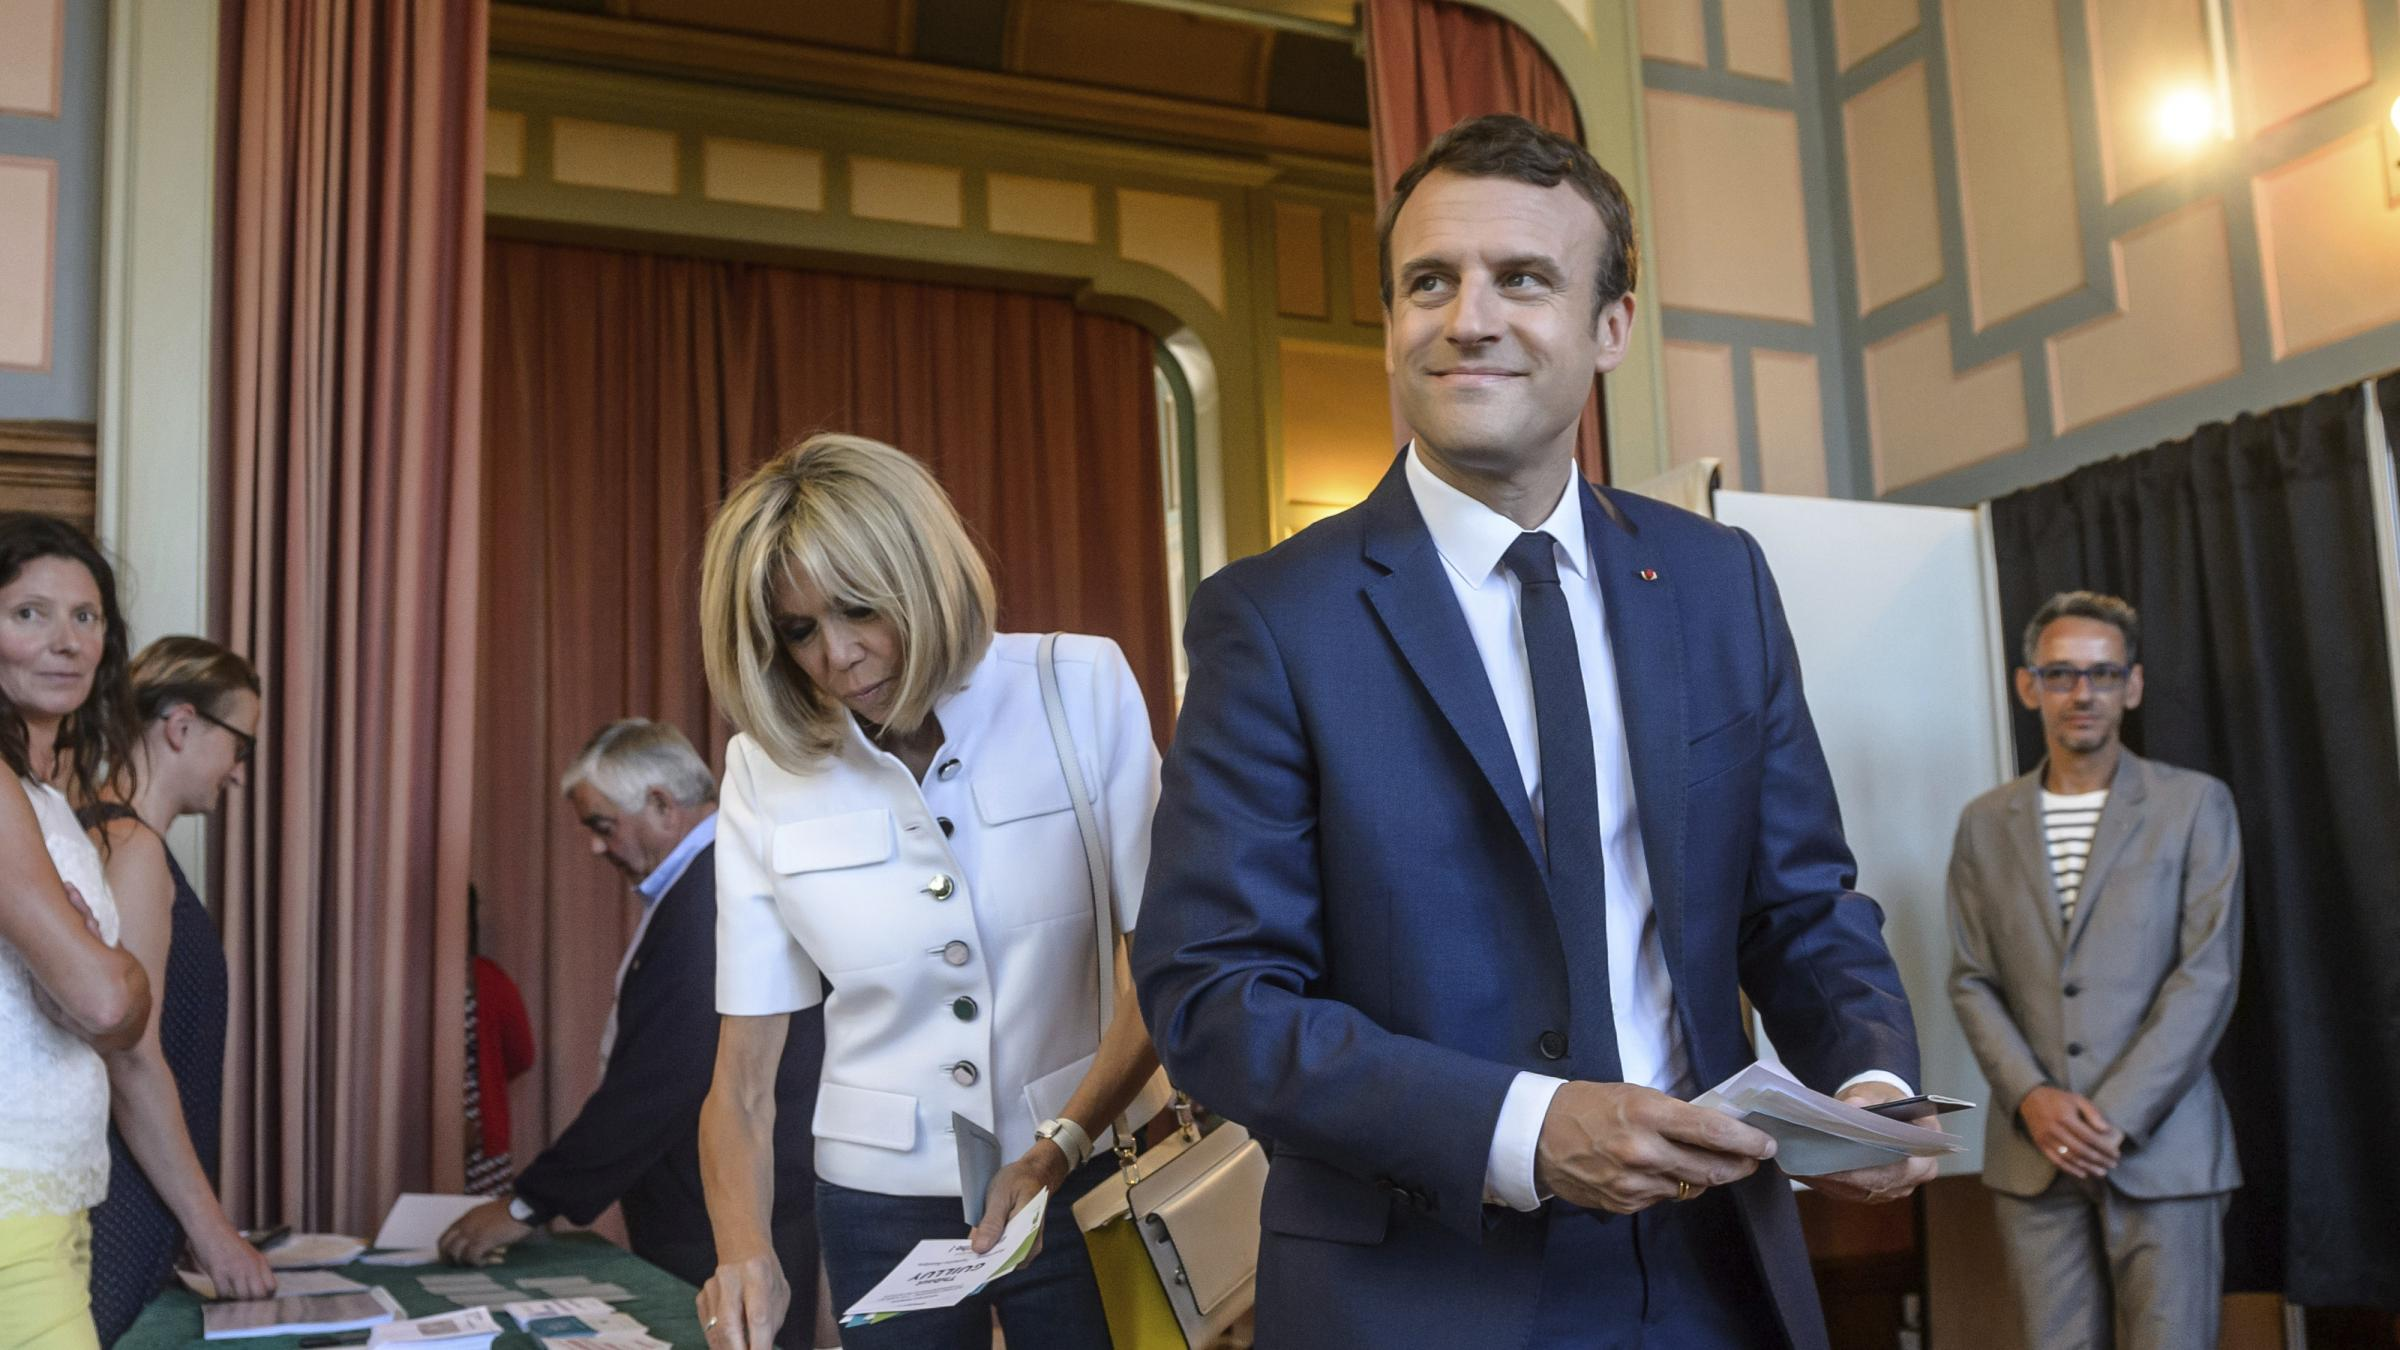 Exit polls show big win for Macron's party in legislative election